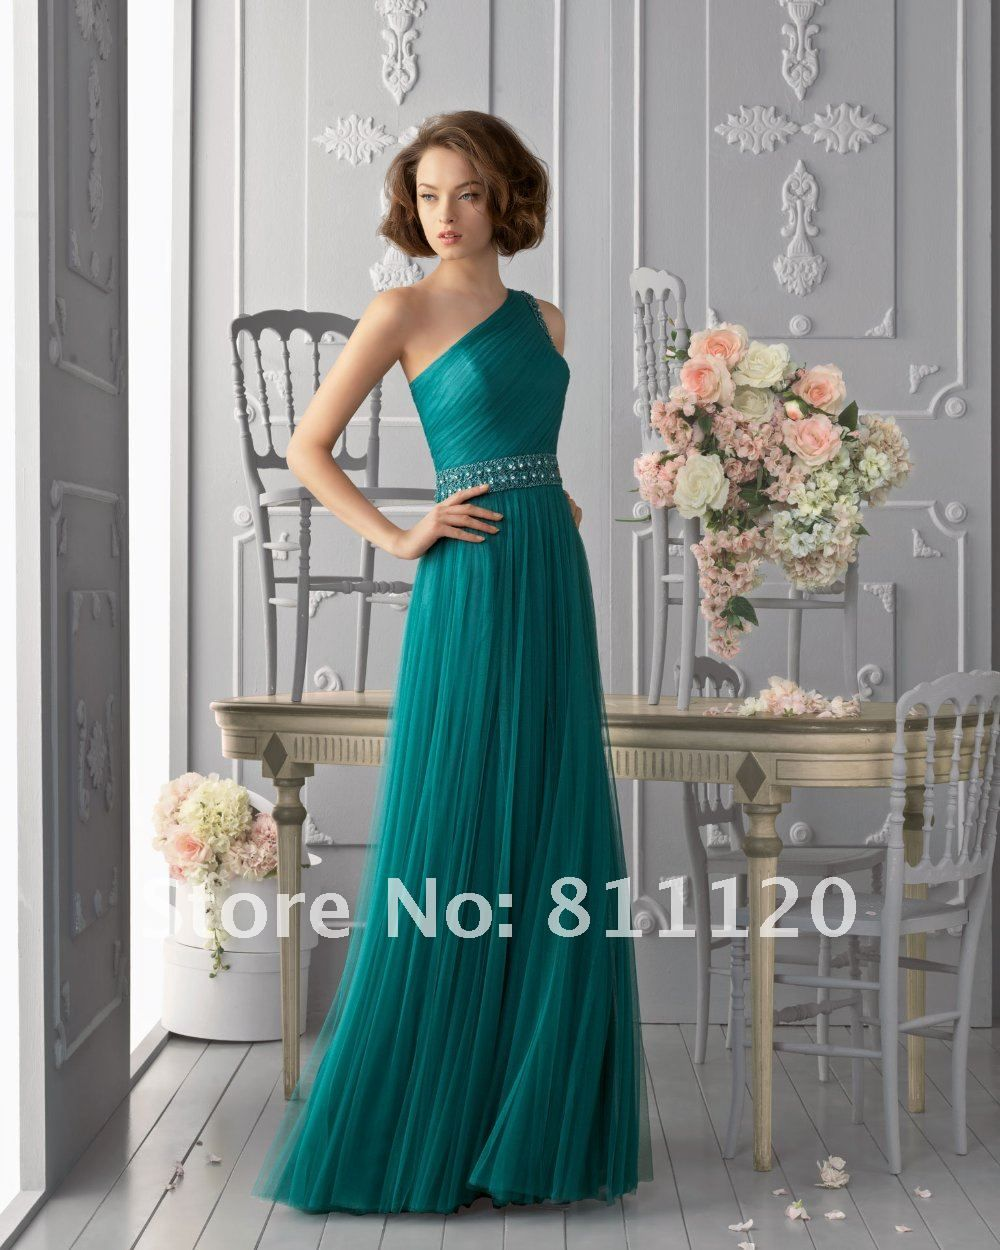 teal lace bridesmaid dresses | Teal Evening Gown Price,Teal ...